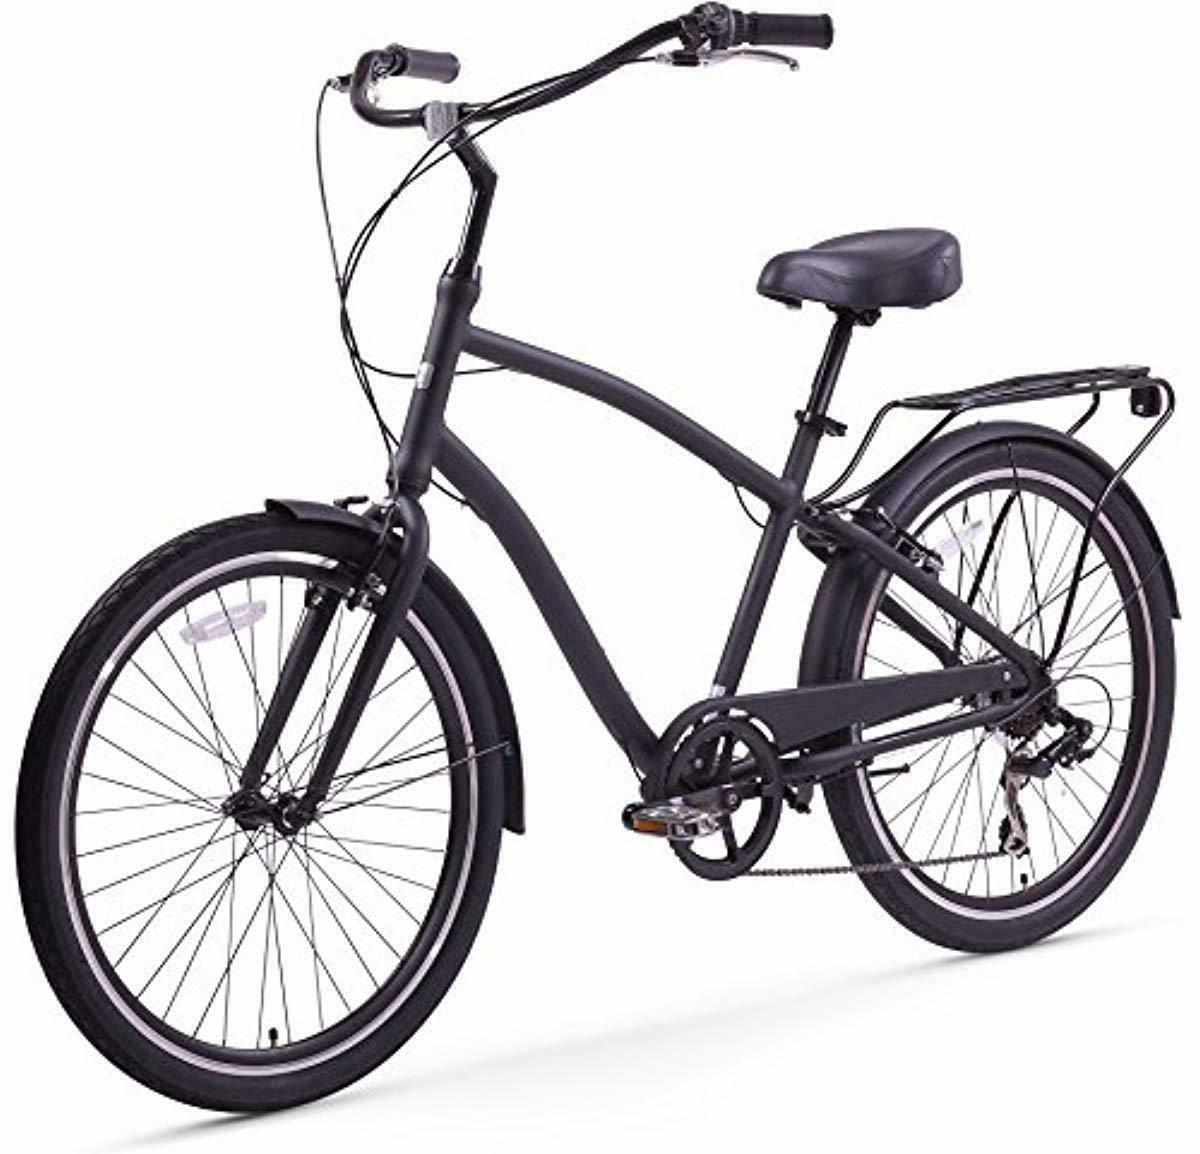 sixthreezero evryjourney men s hybrid cruiser bicycle